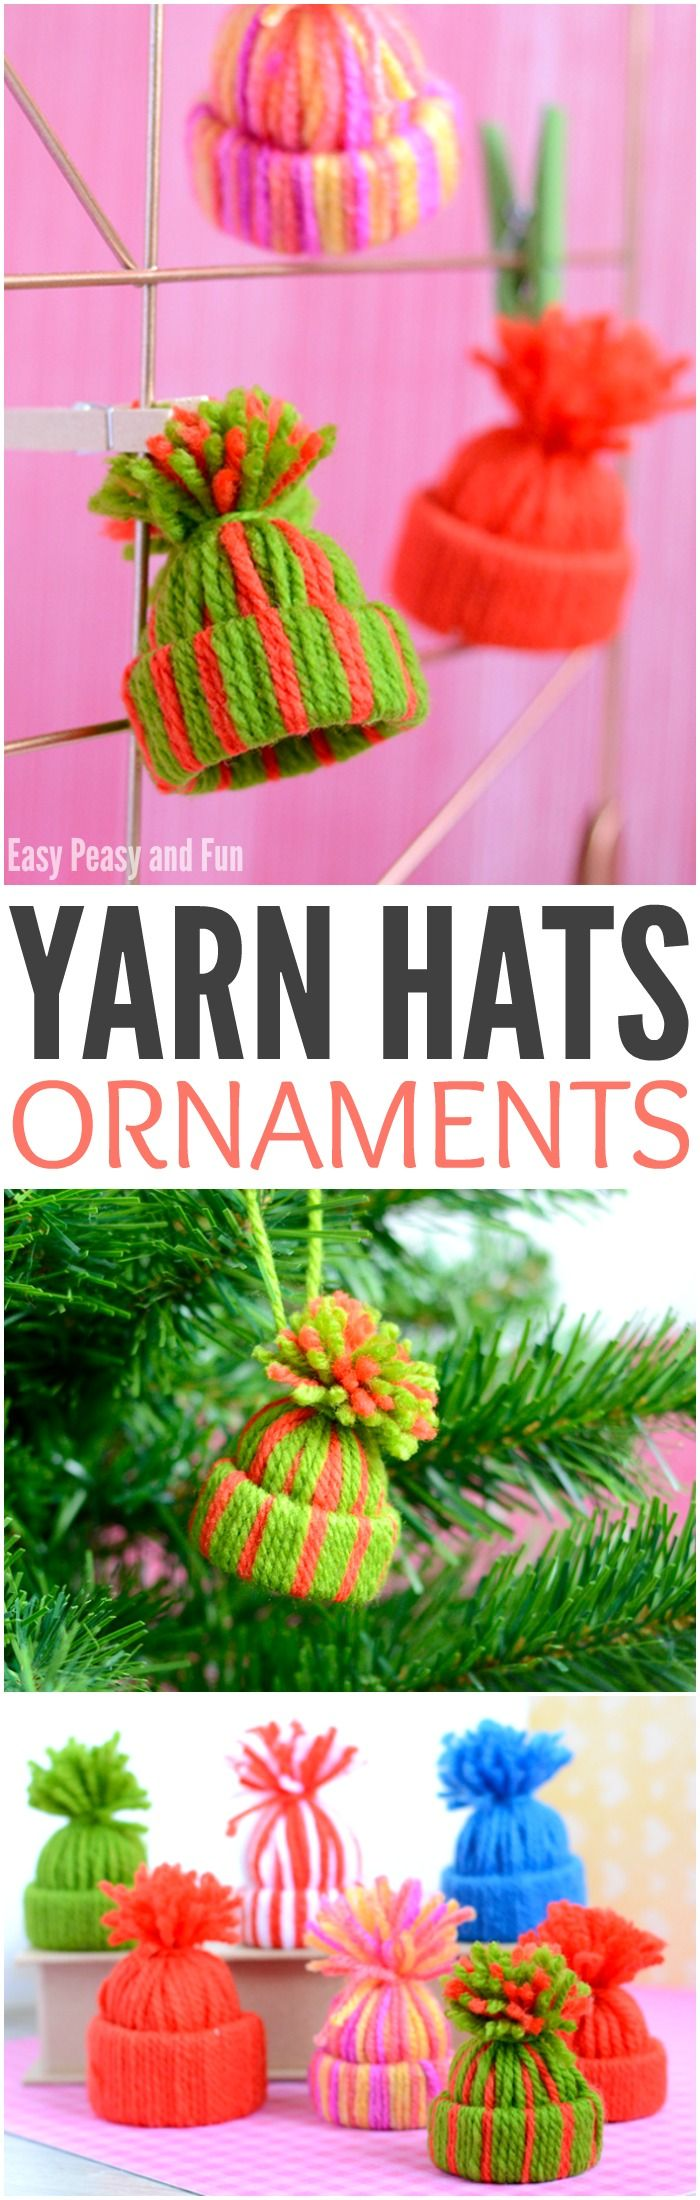 Best 25+ Easy christmas ornaments ideas on Pinterest | Diy ...